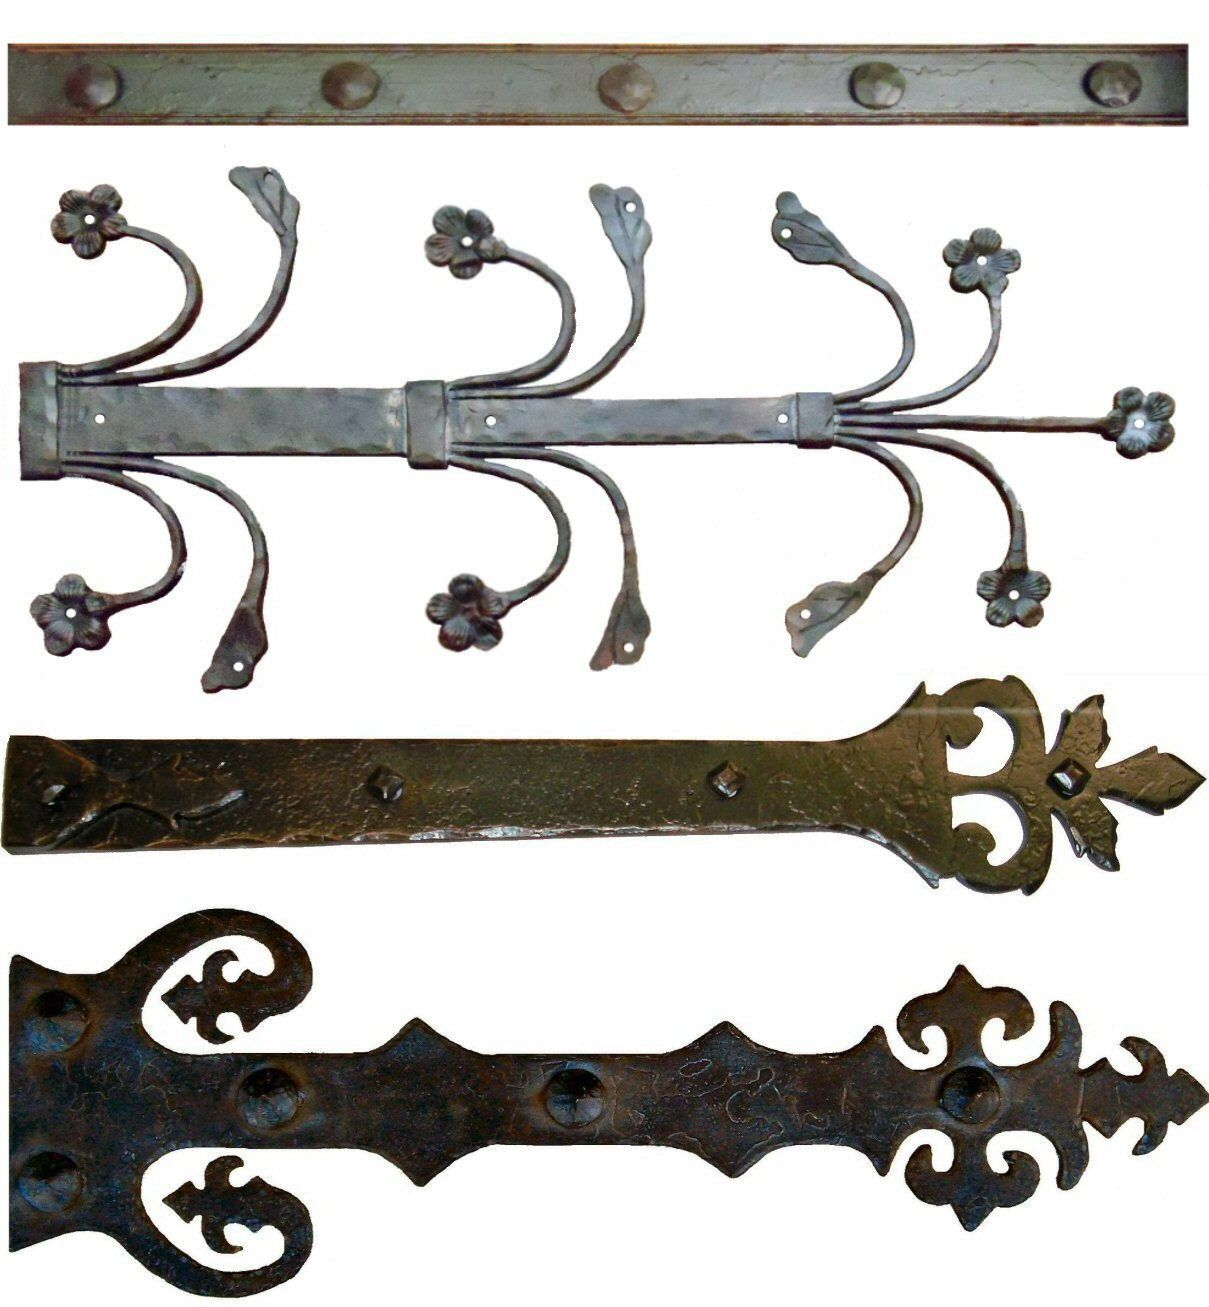 The Decorative Iron Hinge Strap Pictured Is Shown All